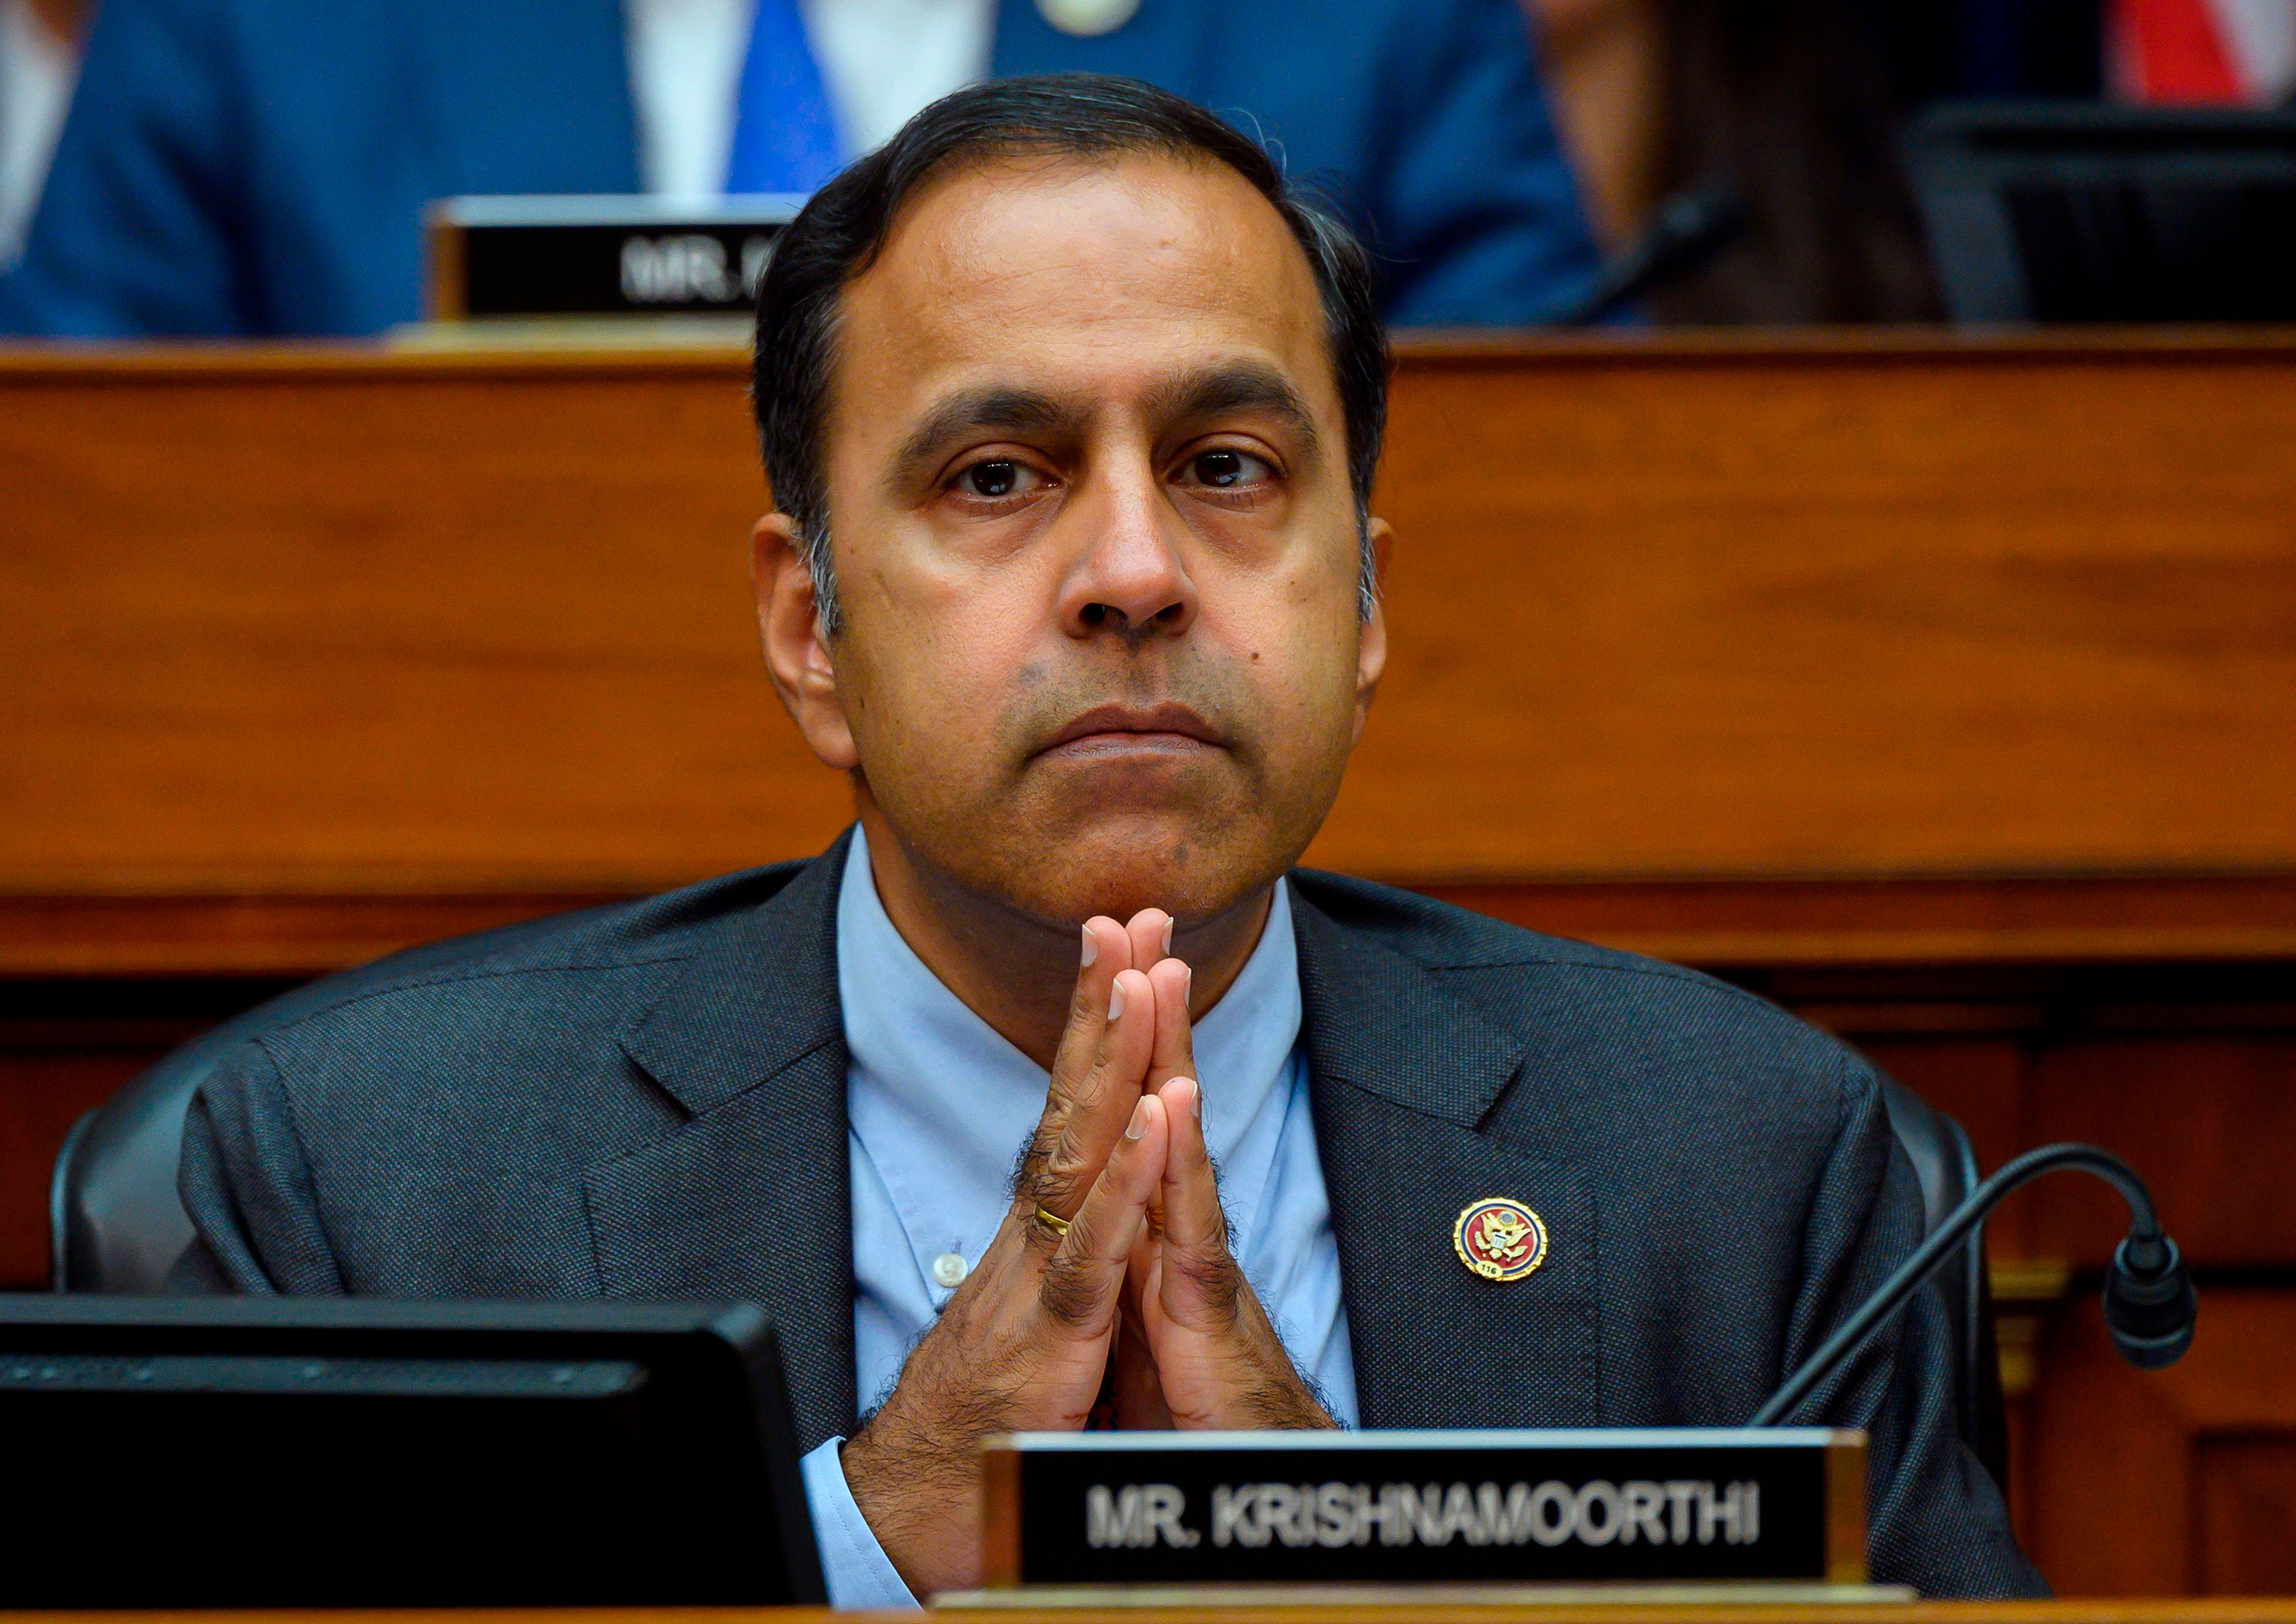 Rep. Krishnamoorthi in September.